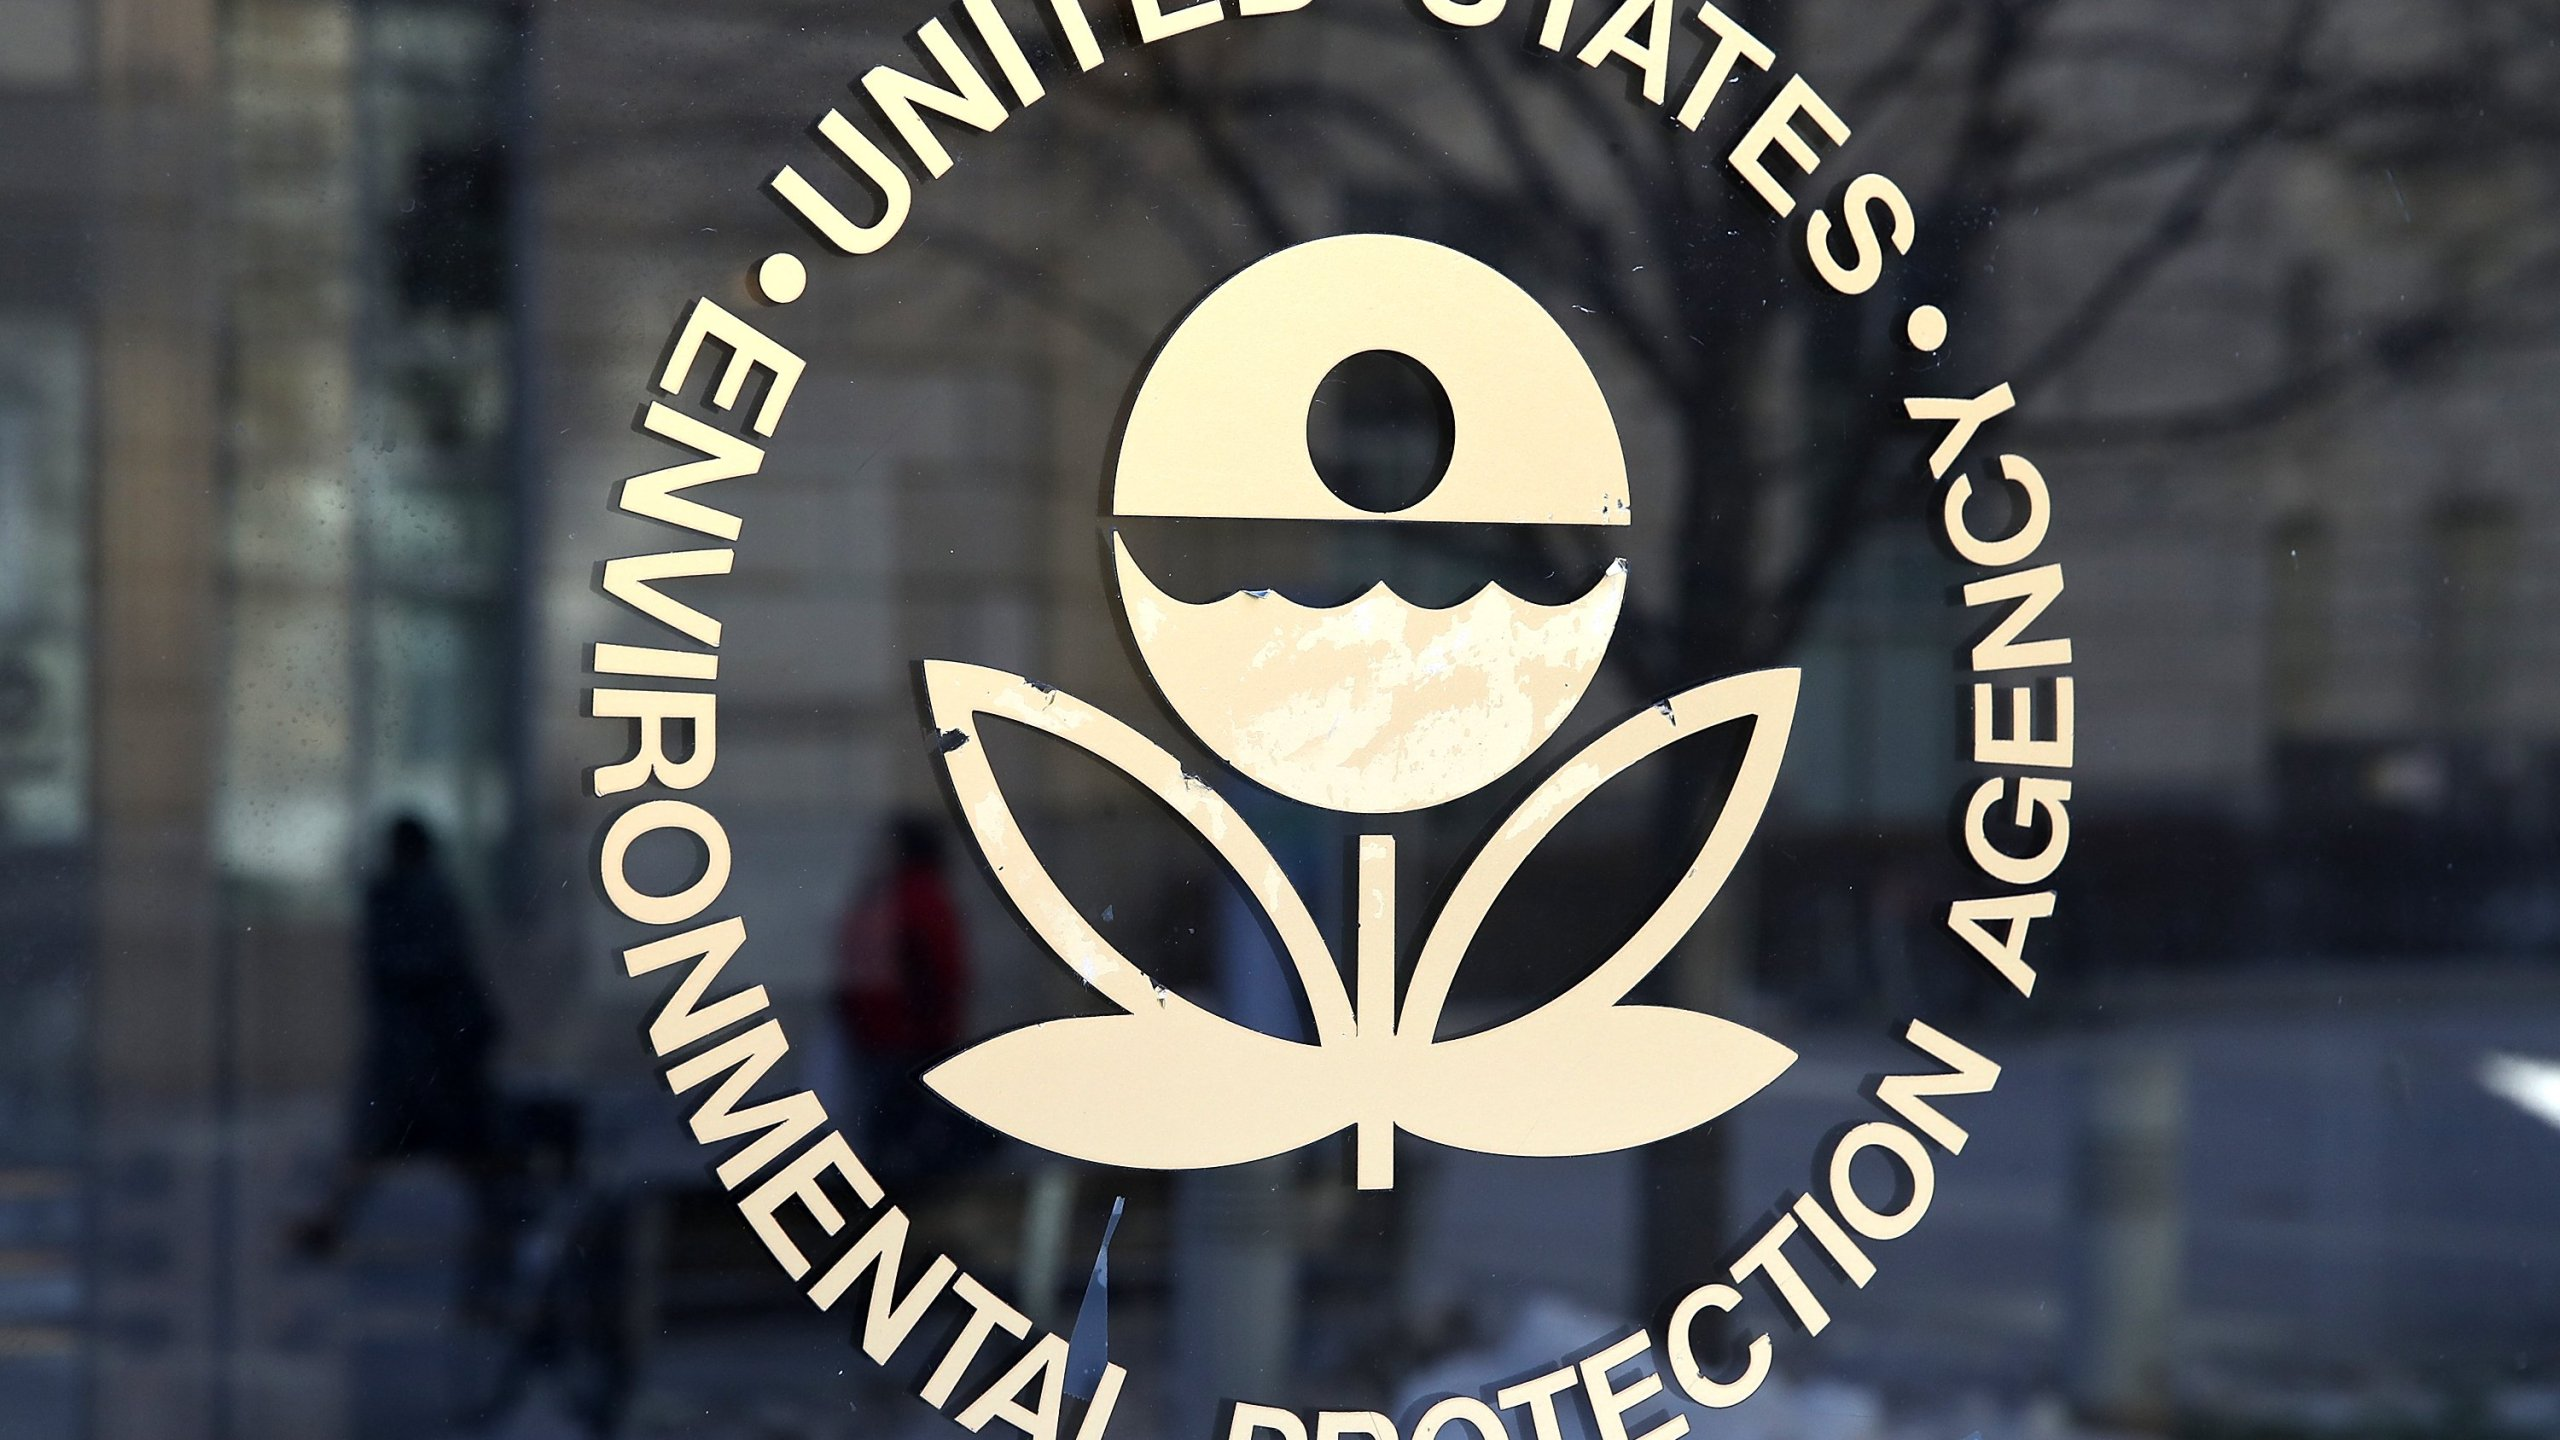 The U.S. Environmental Protection Agency's (EPA) logo is displayed on a door at its headquarters on March 16, 2017 in Washington, DC. (Justin Sullivan/Getty Images)